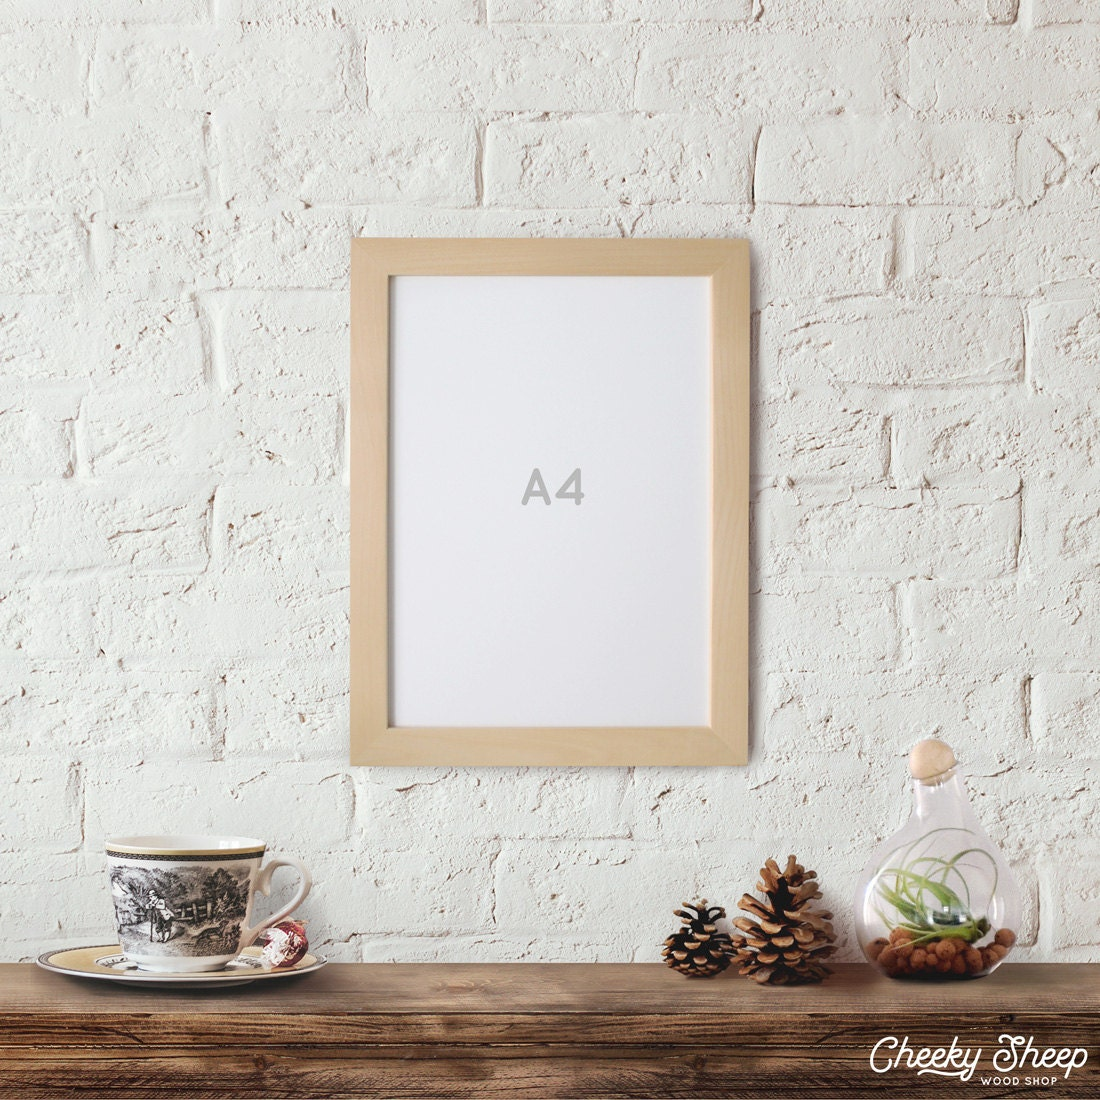 A4 Picture Frame 21 Cm X 29 7 Cm Natural Unfinished Wood